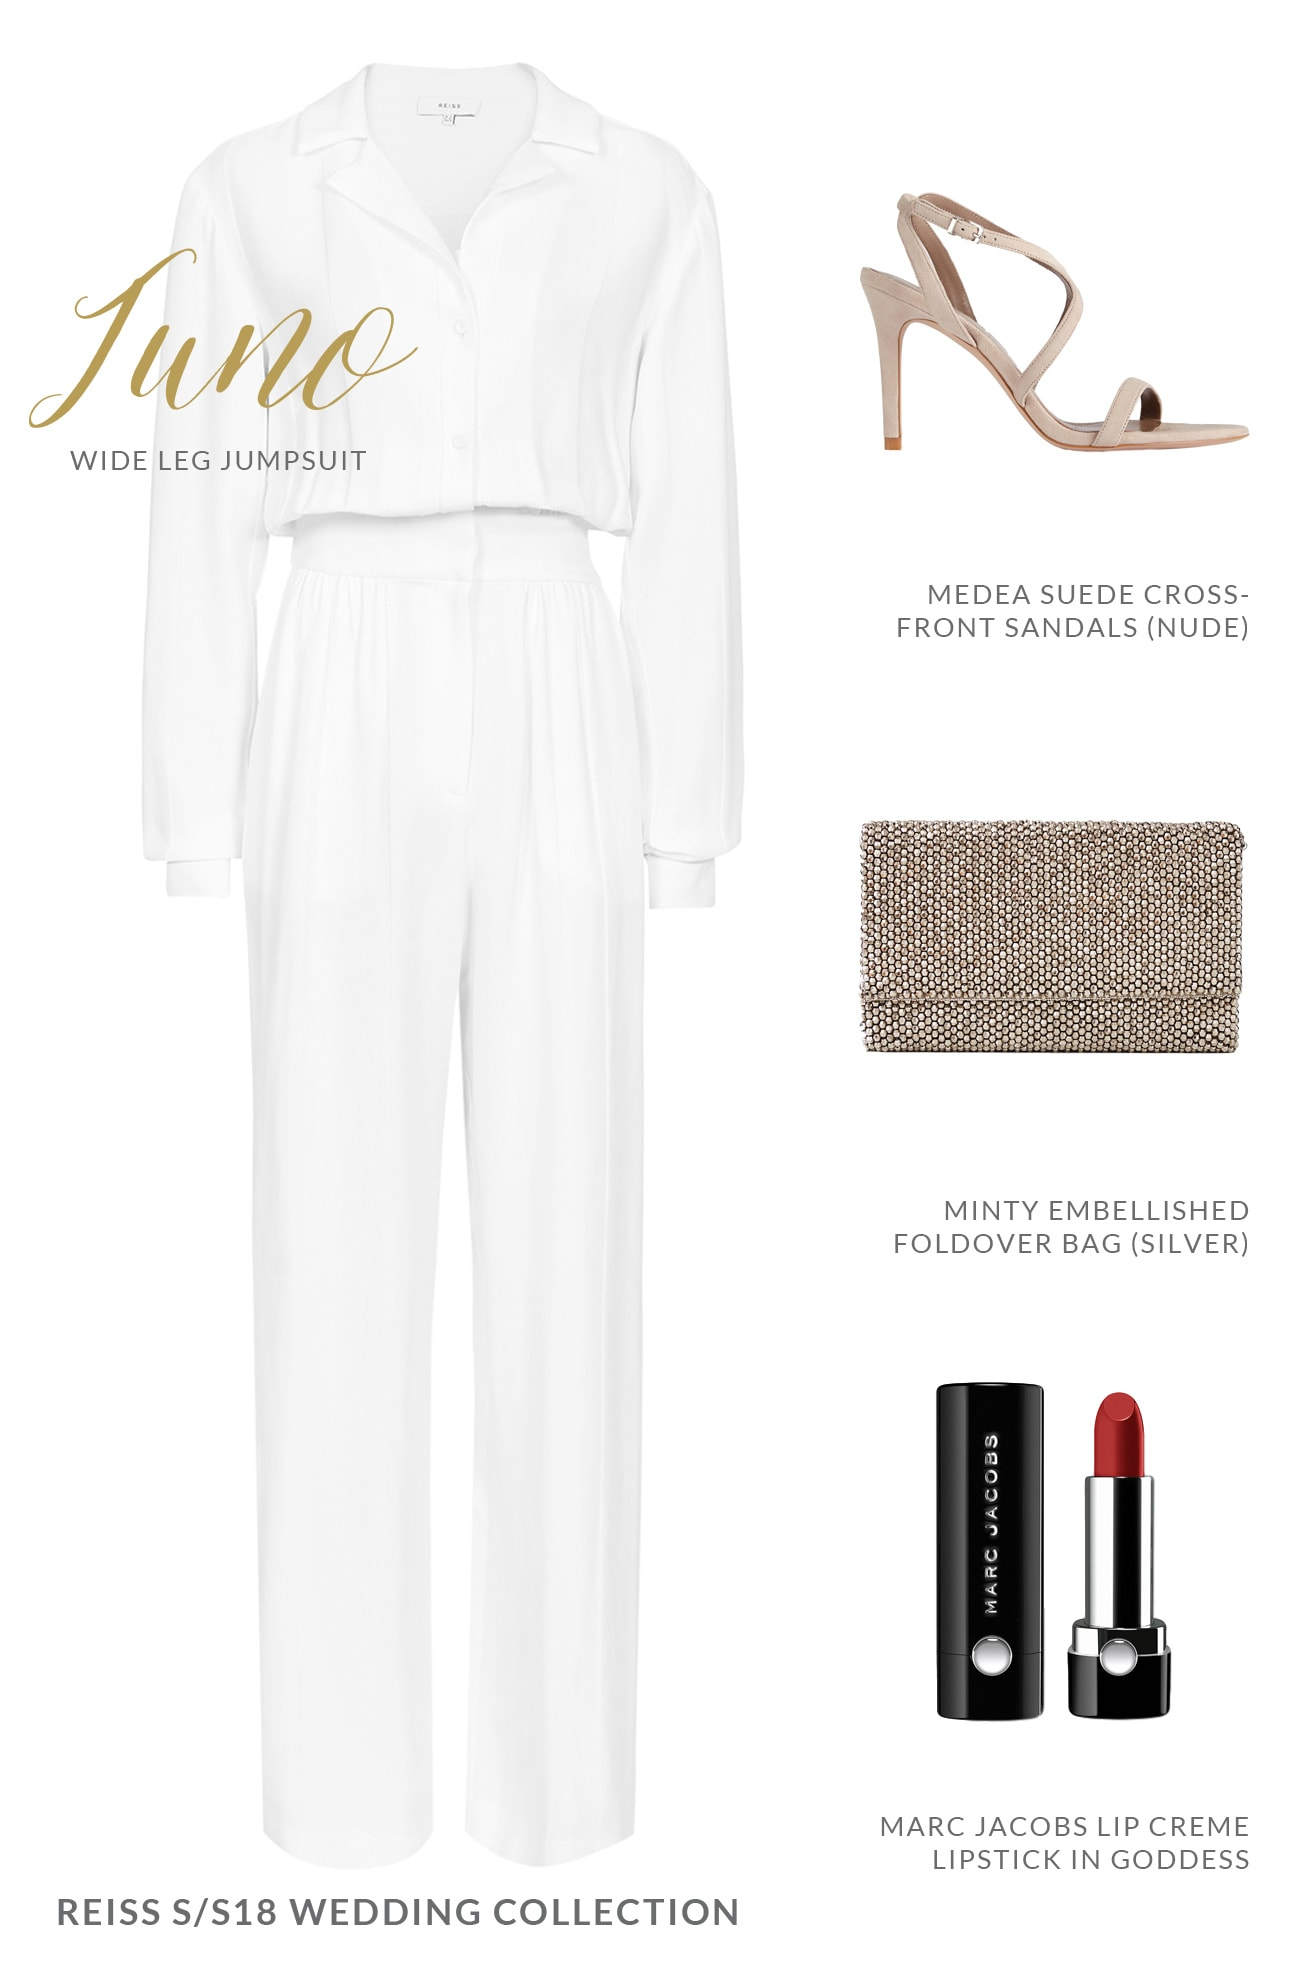 White Jumpsuit for Female Wedding Guests